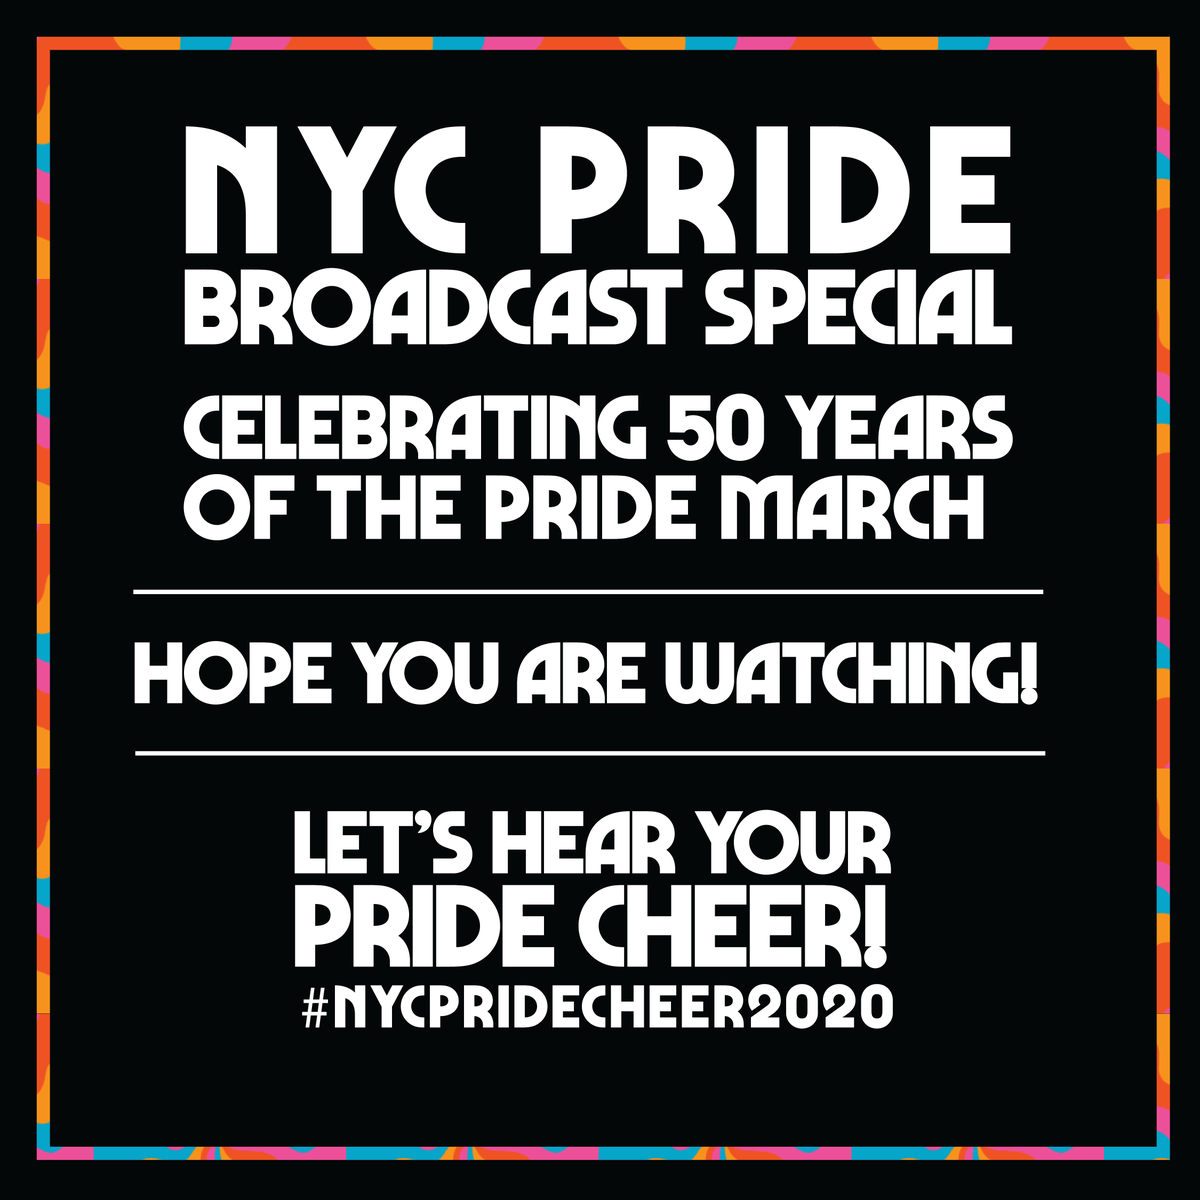 Here it is! Our final #nycpridecheer2020 is right around the corner so let's see and hear your cheer! Pride is year-round but at 1:00 pm EDT, we're symbolically celebrating together. Happy Pride, everyone! ❤️🧡💛💚💙💜🏳️🌈 https://t.co/RQkIp3U7KO